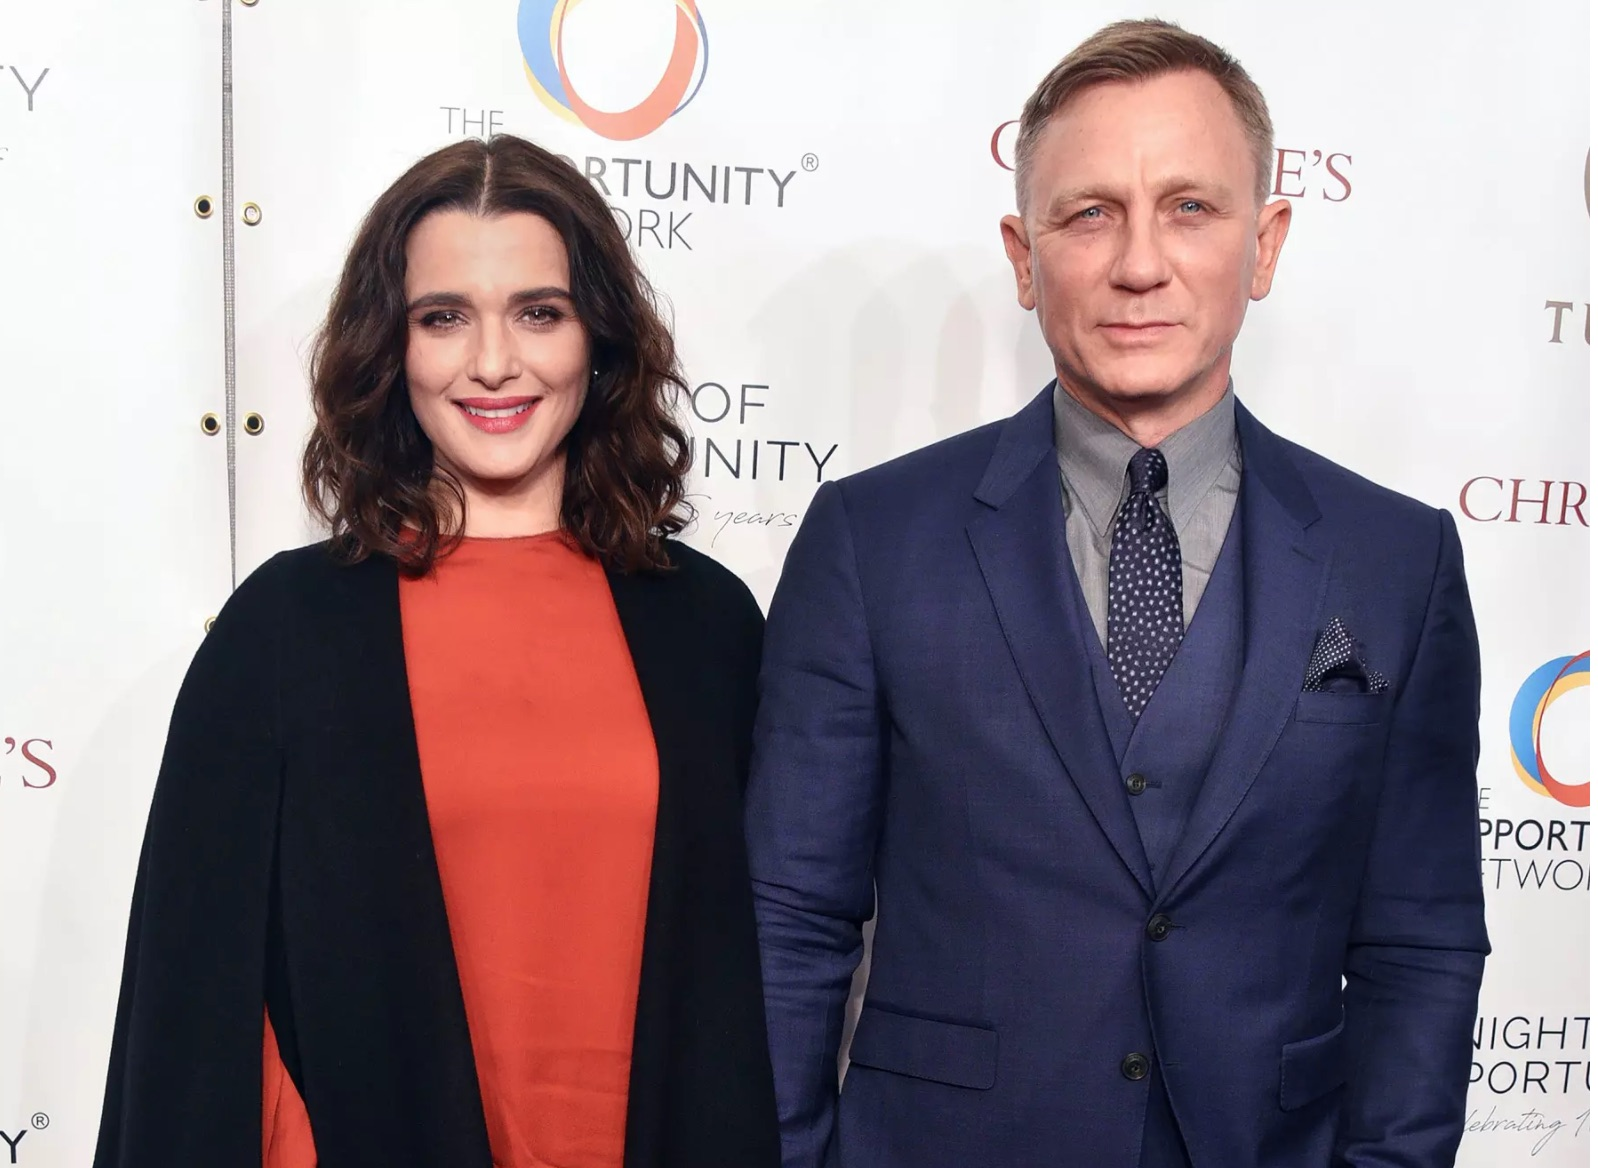 Rachel Weisz, 48, Reveals She's Expecting First Child With Husband Daniel Craig